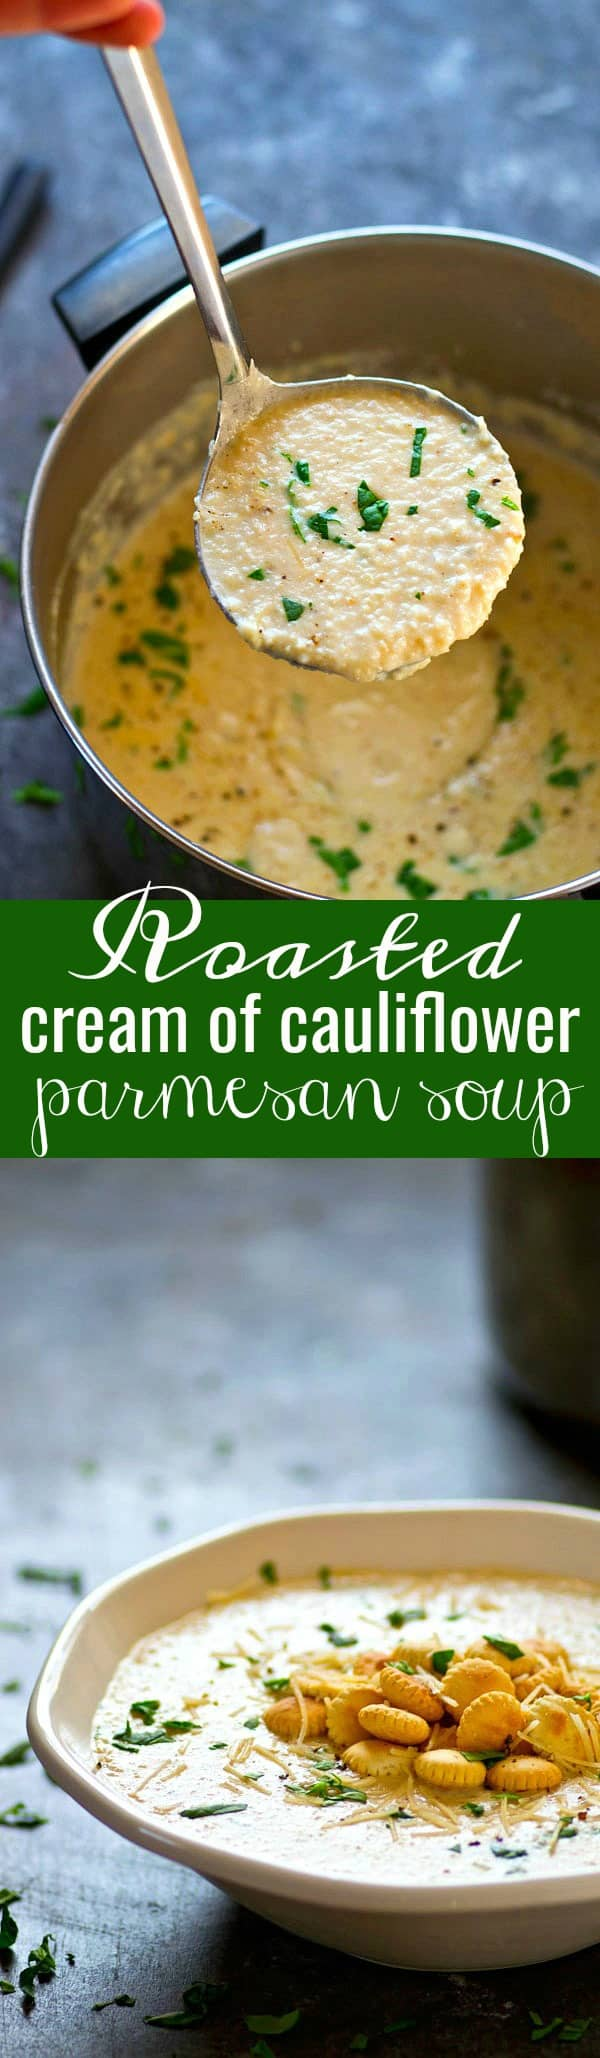 Insanely creamy and LOW on the calories, this roasted cream of cauliflower Parmesan soup packs a punch of cozy flavors and you'll be wanting bowl after bowl!